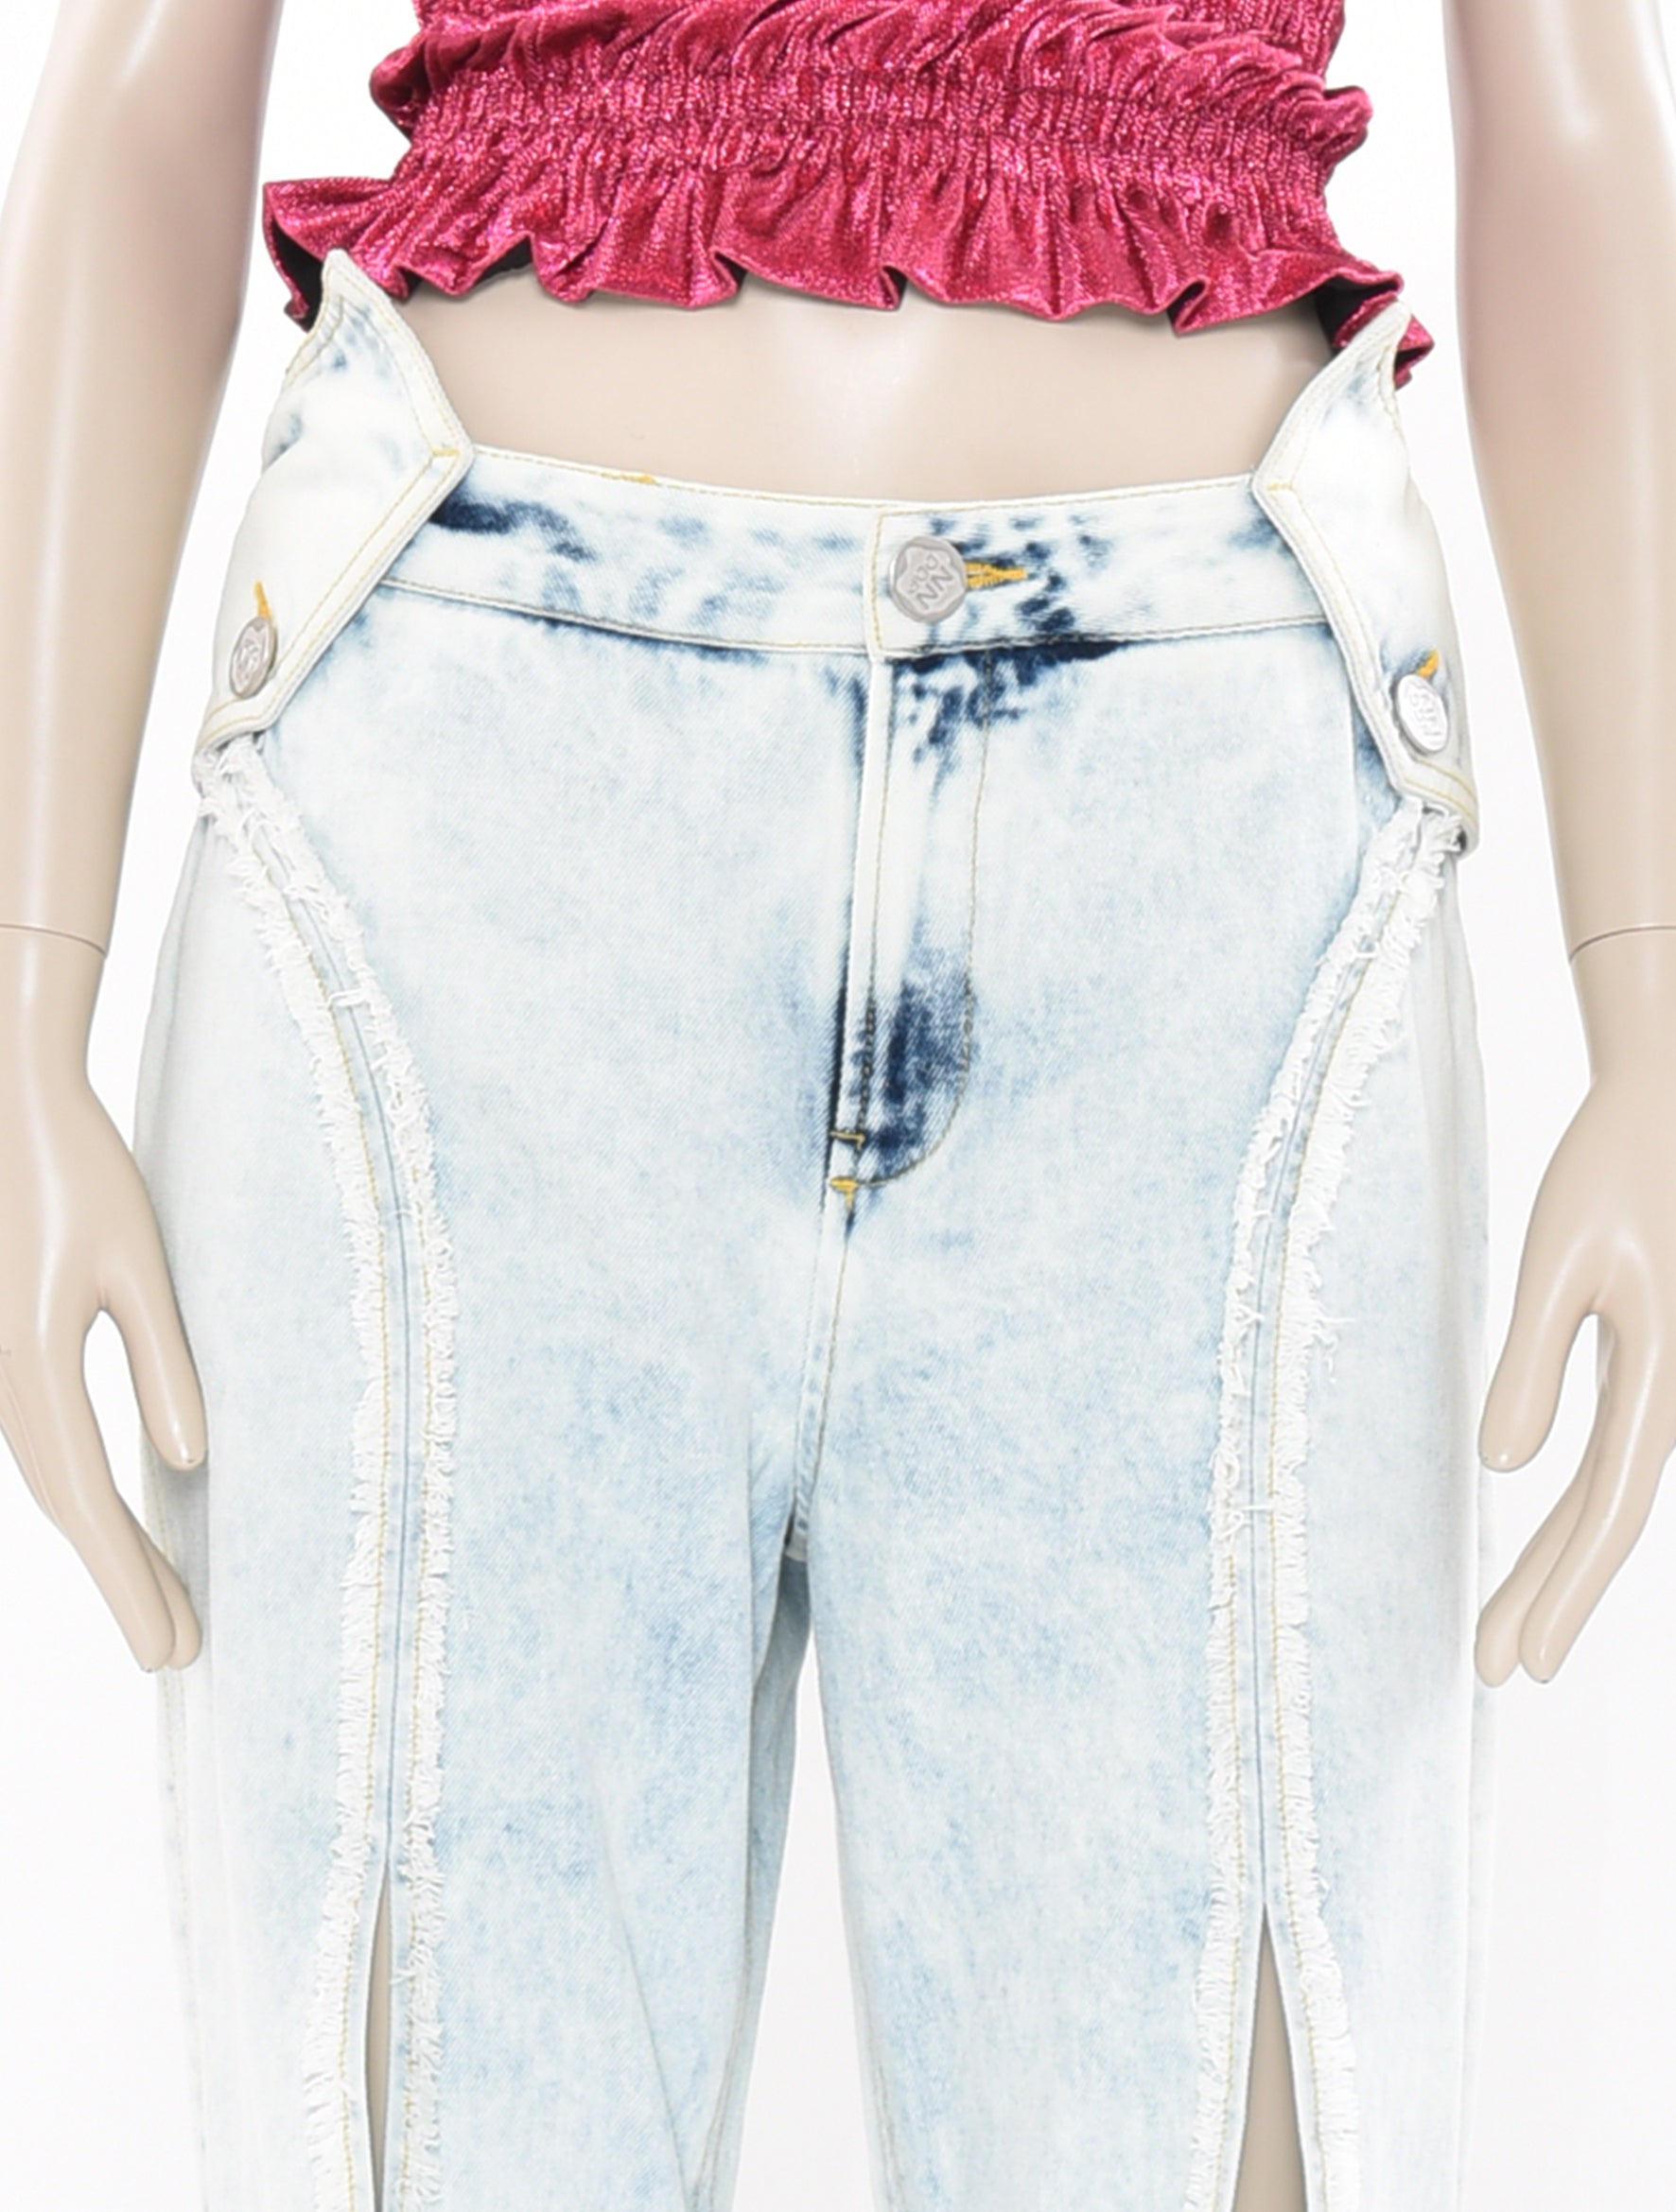 Neith Nyer DDP Washed Denim Pants